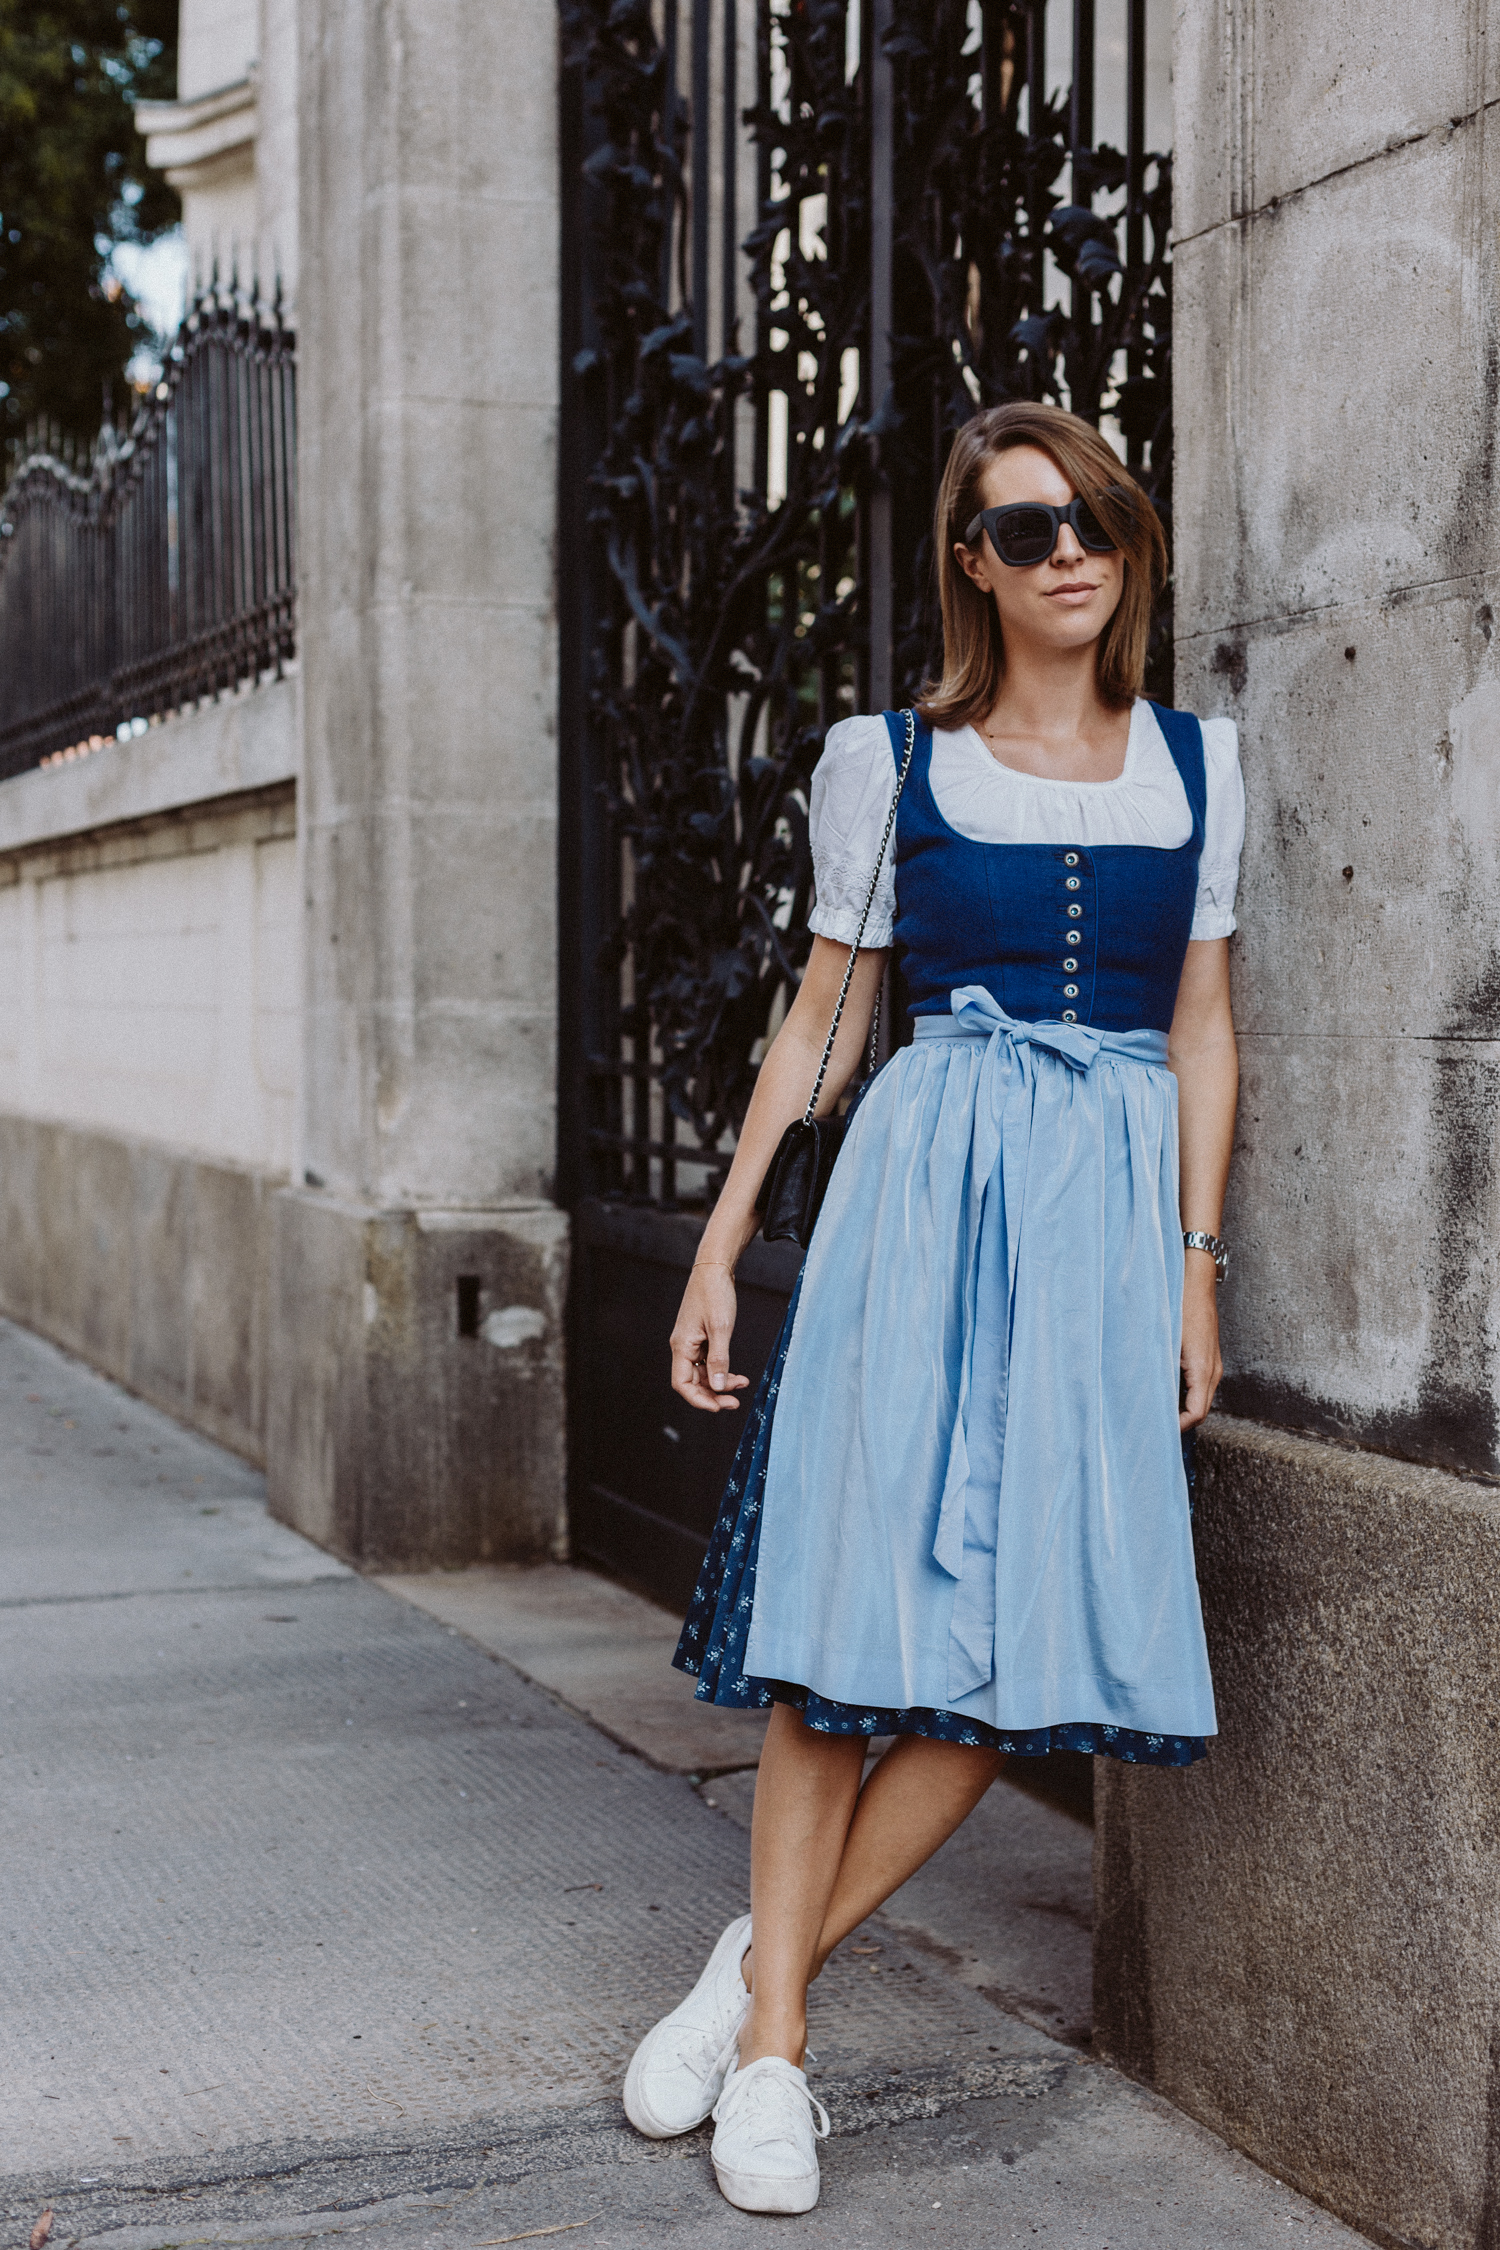 In Tracht We Trust: Oktoberfest Dirndl Outfit, Limberry Dirndl, Vintage Dirndlbluse | Love Daily Dose